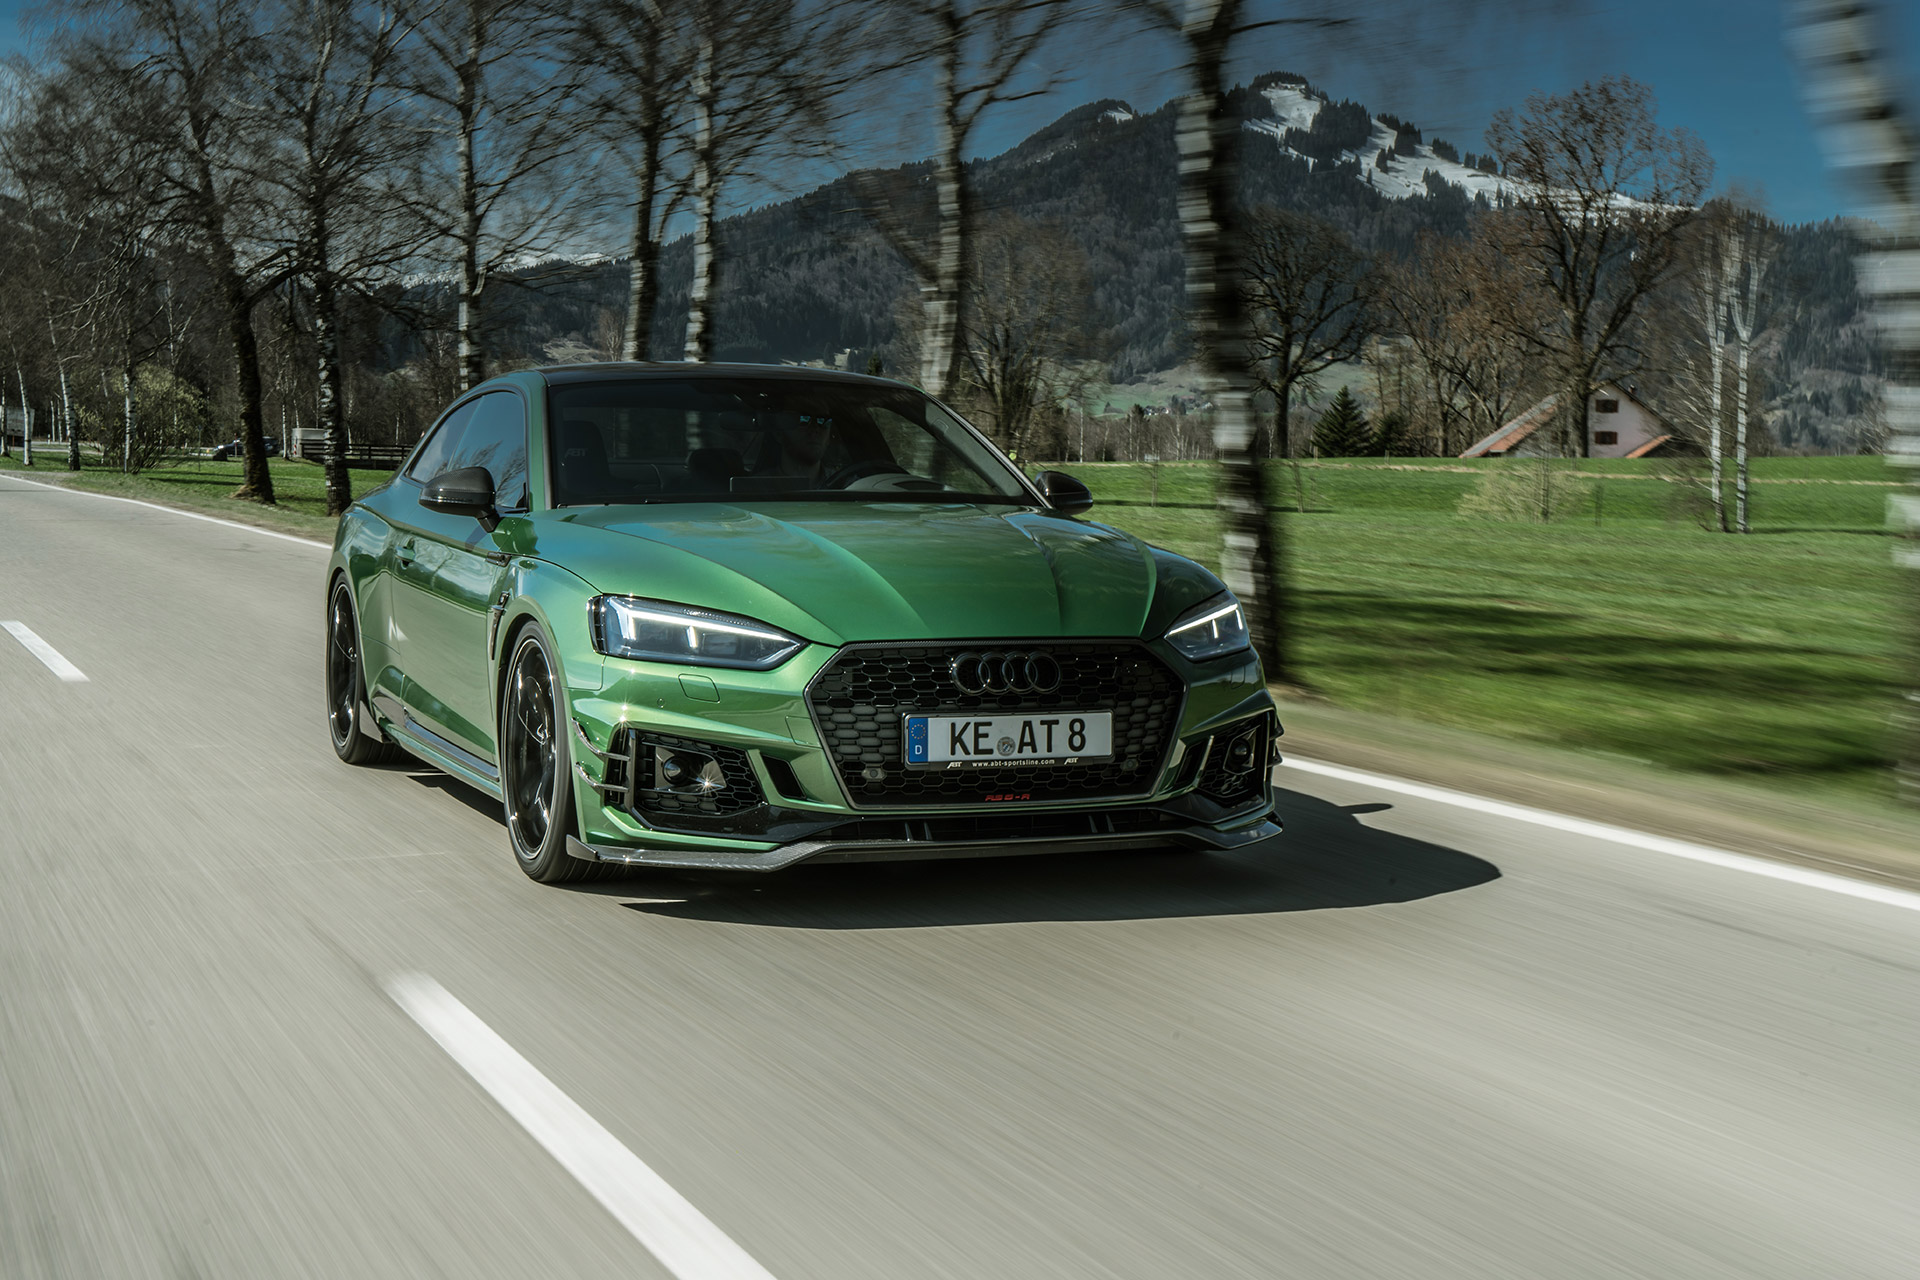 2019 Audi Rs5 R Quattro Abt F5 B9 Drive My Blogs Drive